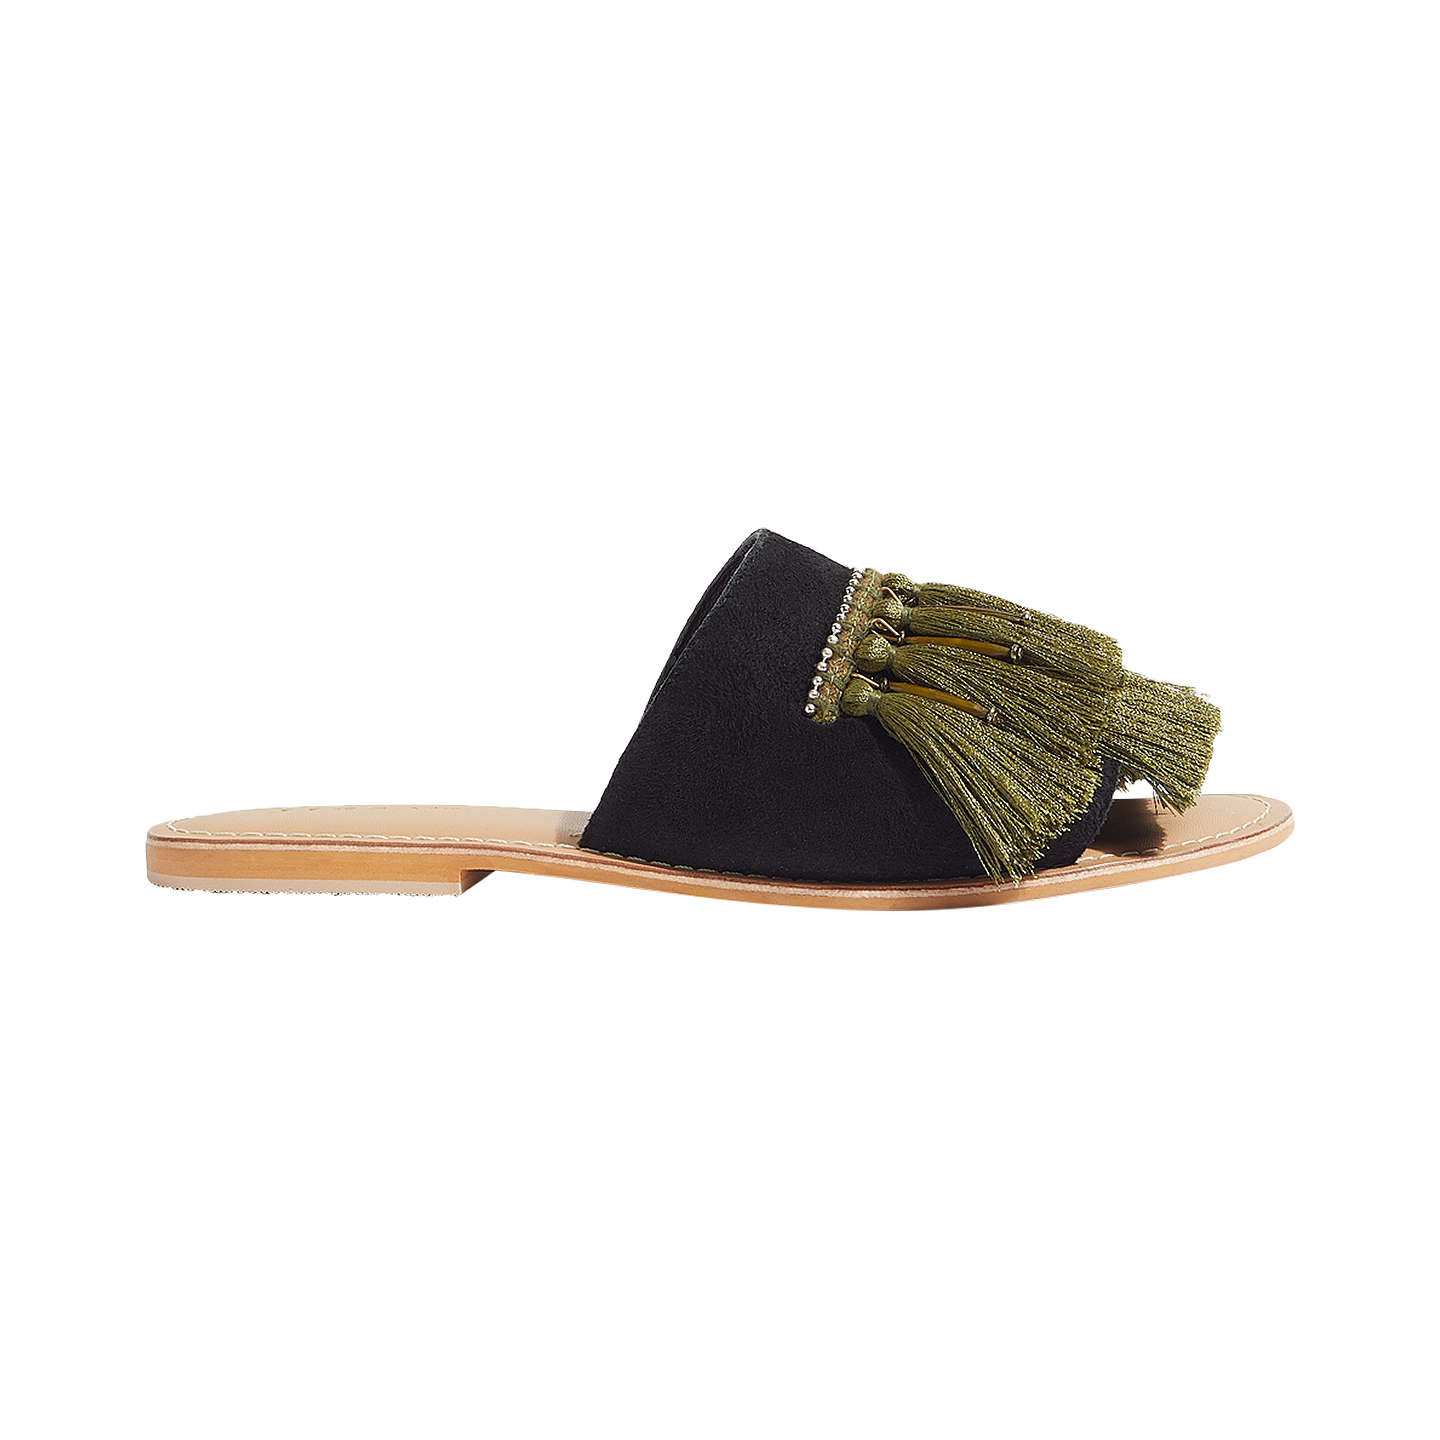 BuyJigsaw Minze Fringe Slider Sandals, Khaki, 3 Online at johnlewis.com